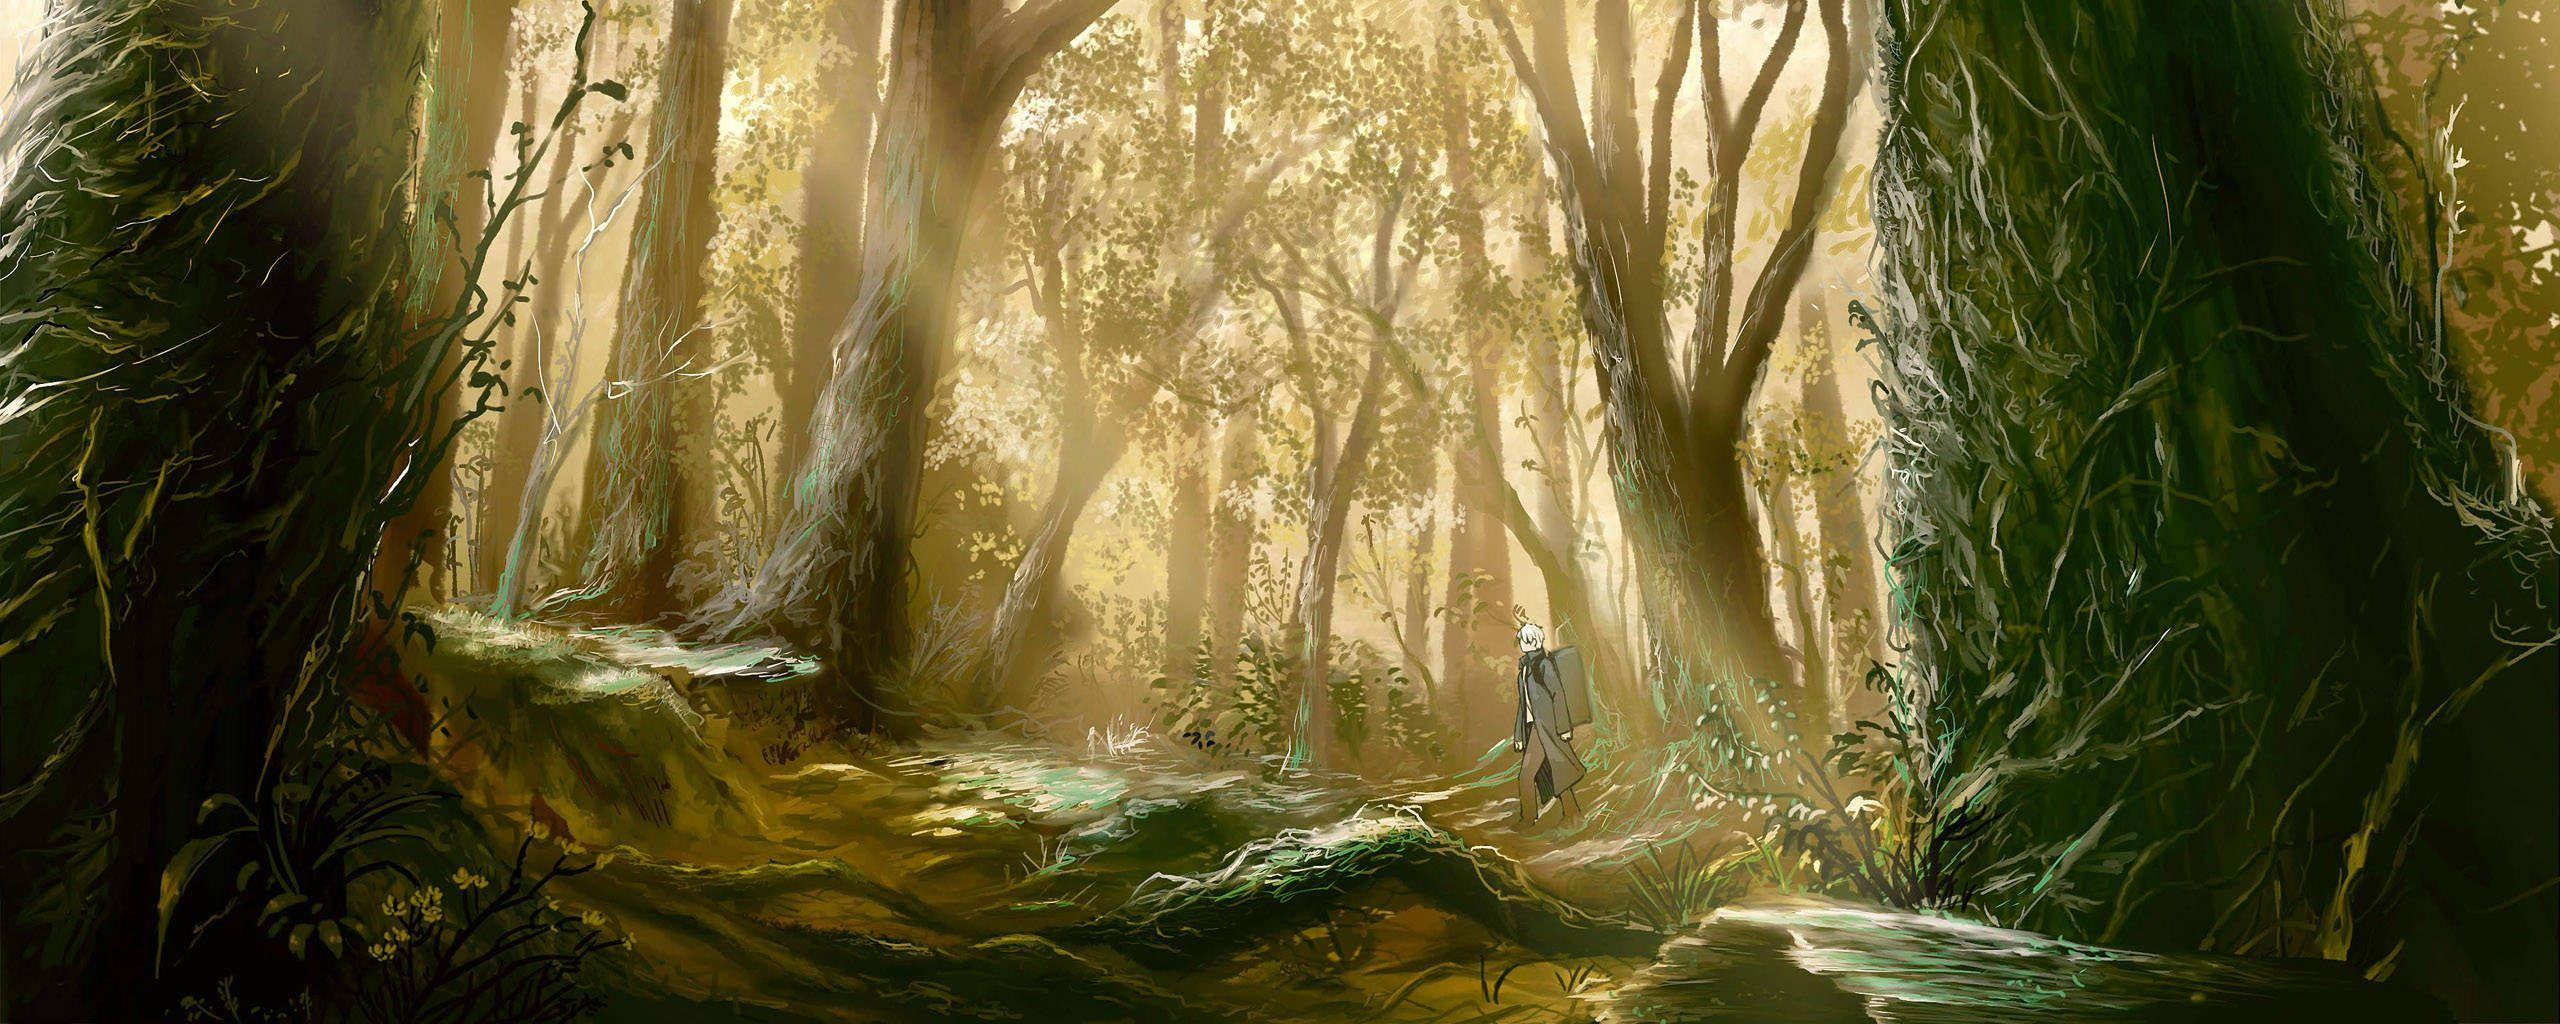 Wallpaper: Free Mushishi Wallpaper. Mushishi Wallpapers